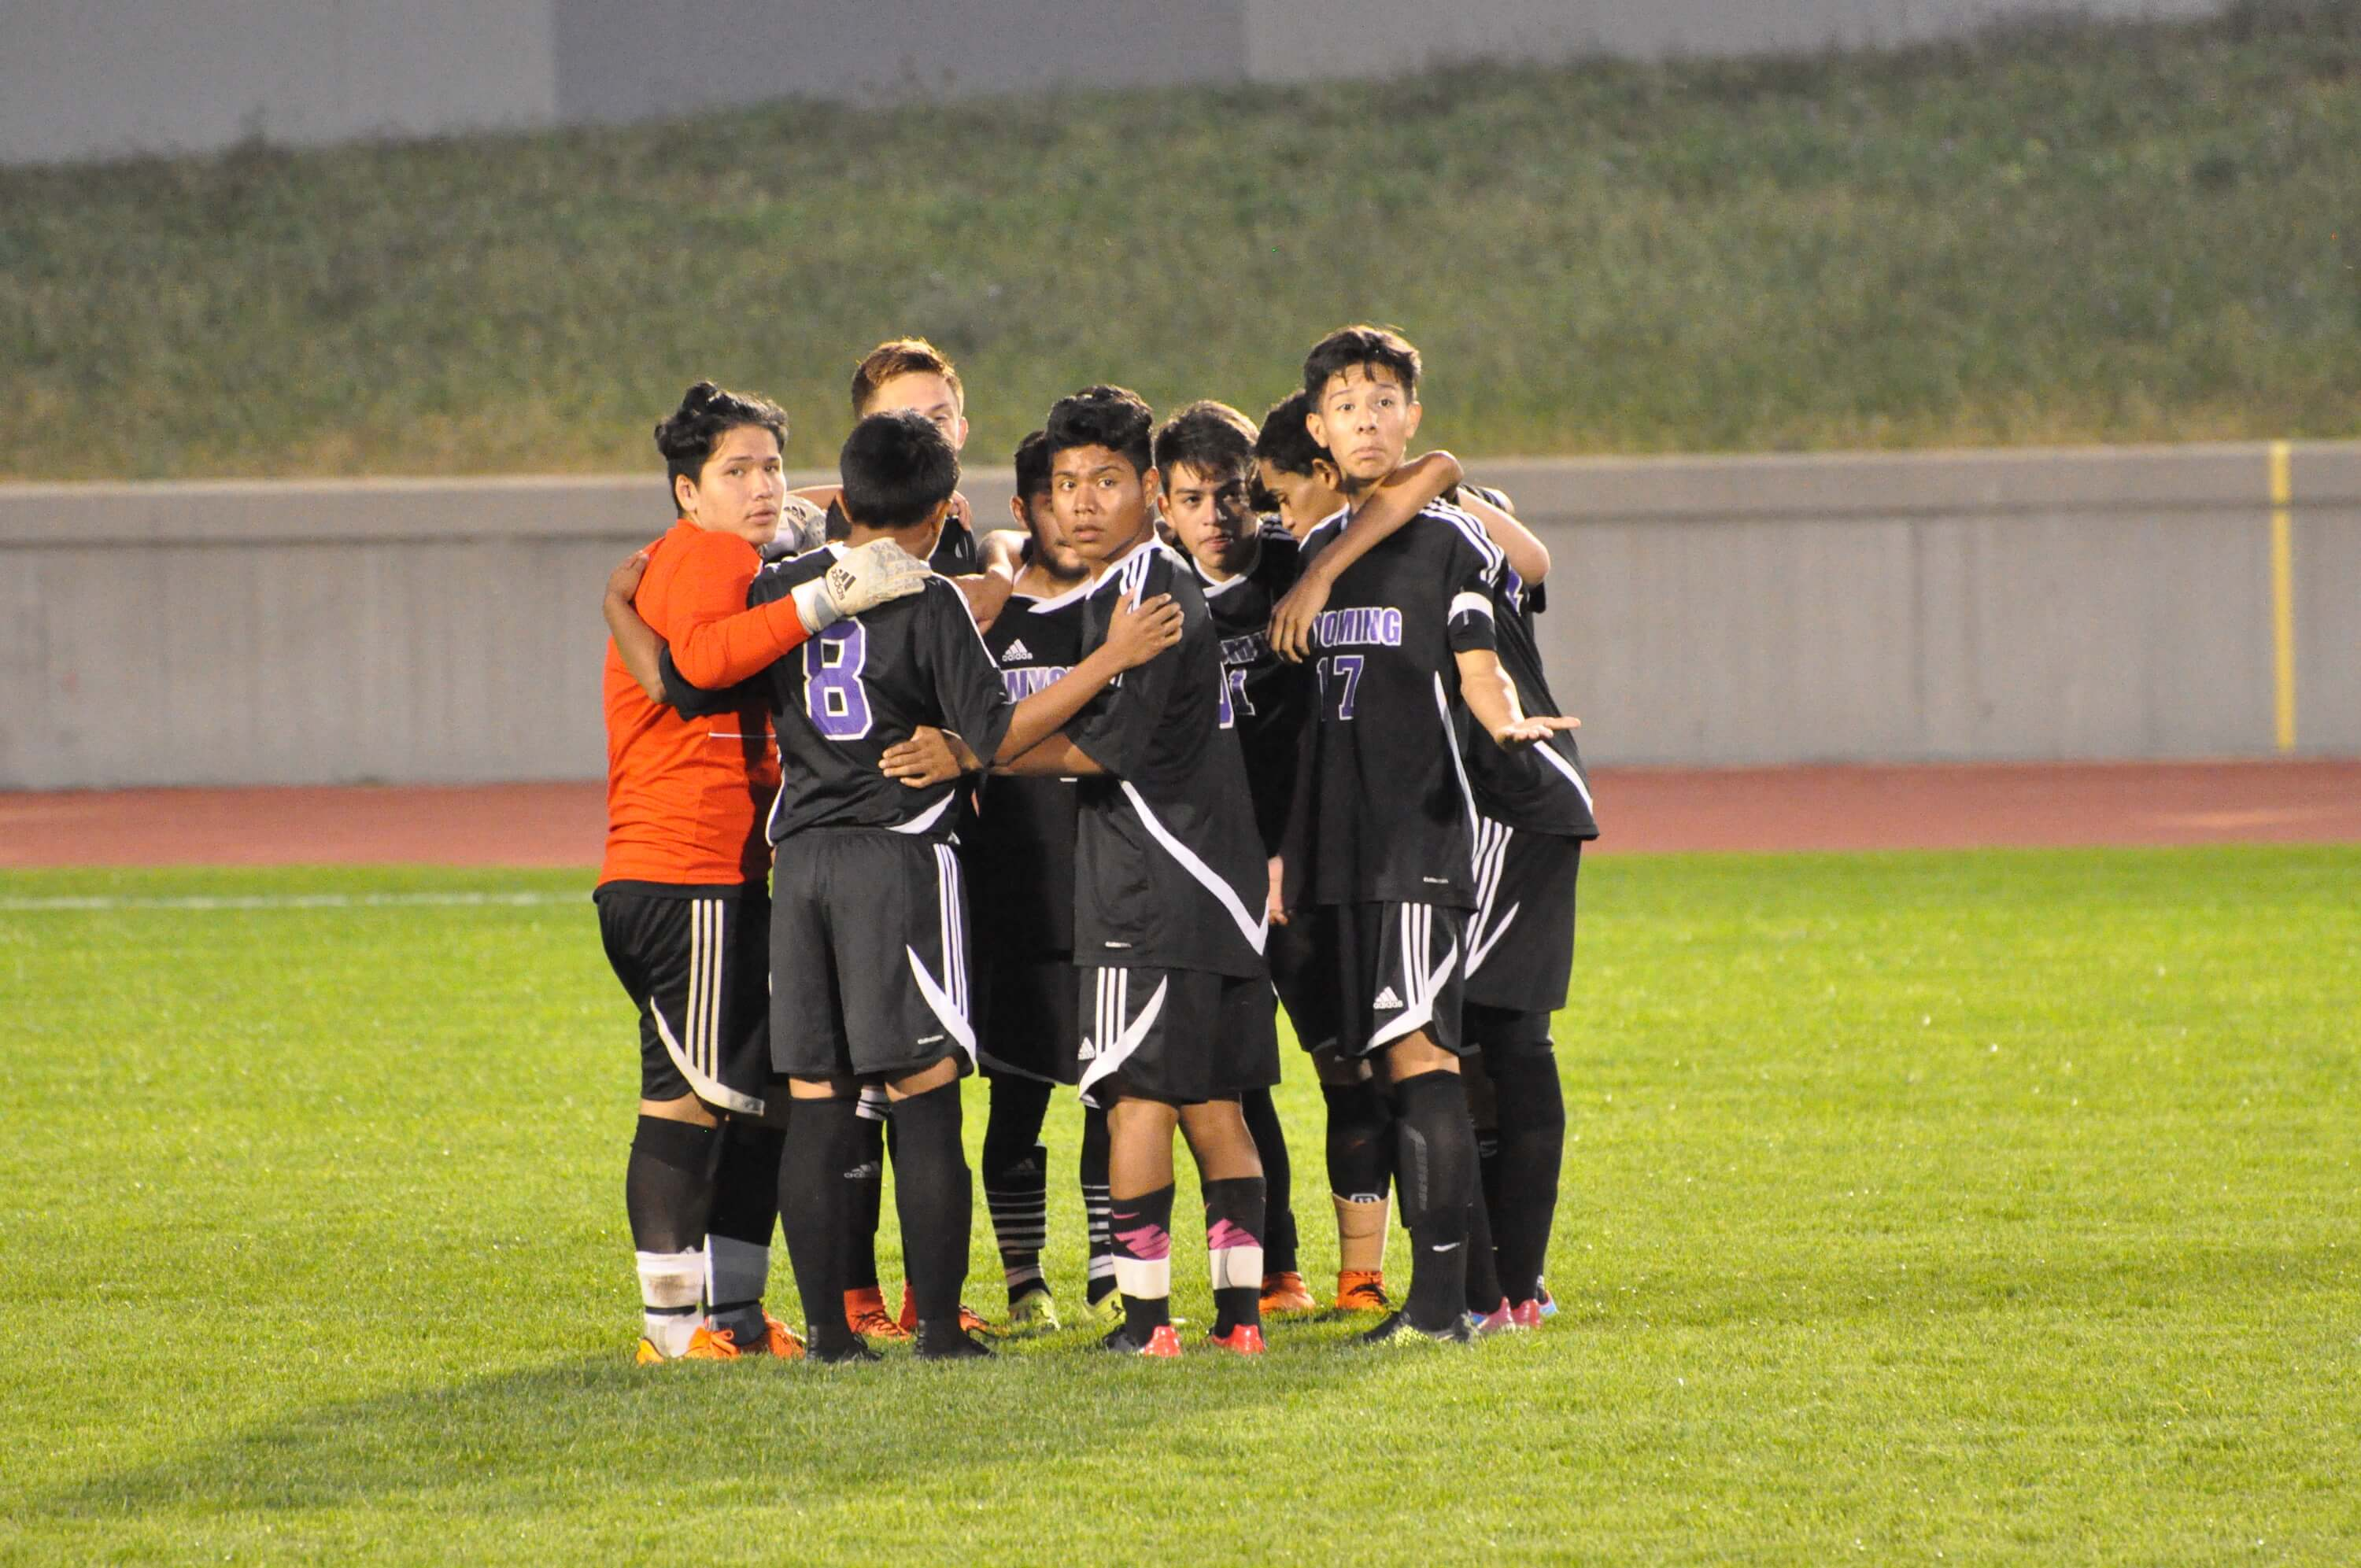 Photo of the soccer team huddle on the field